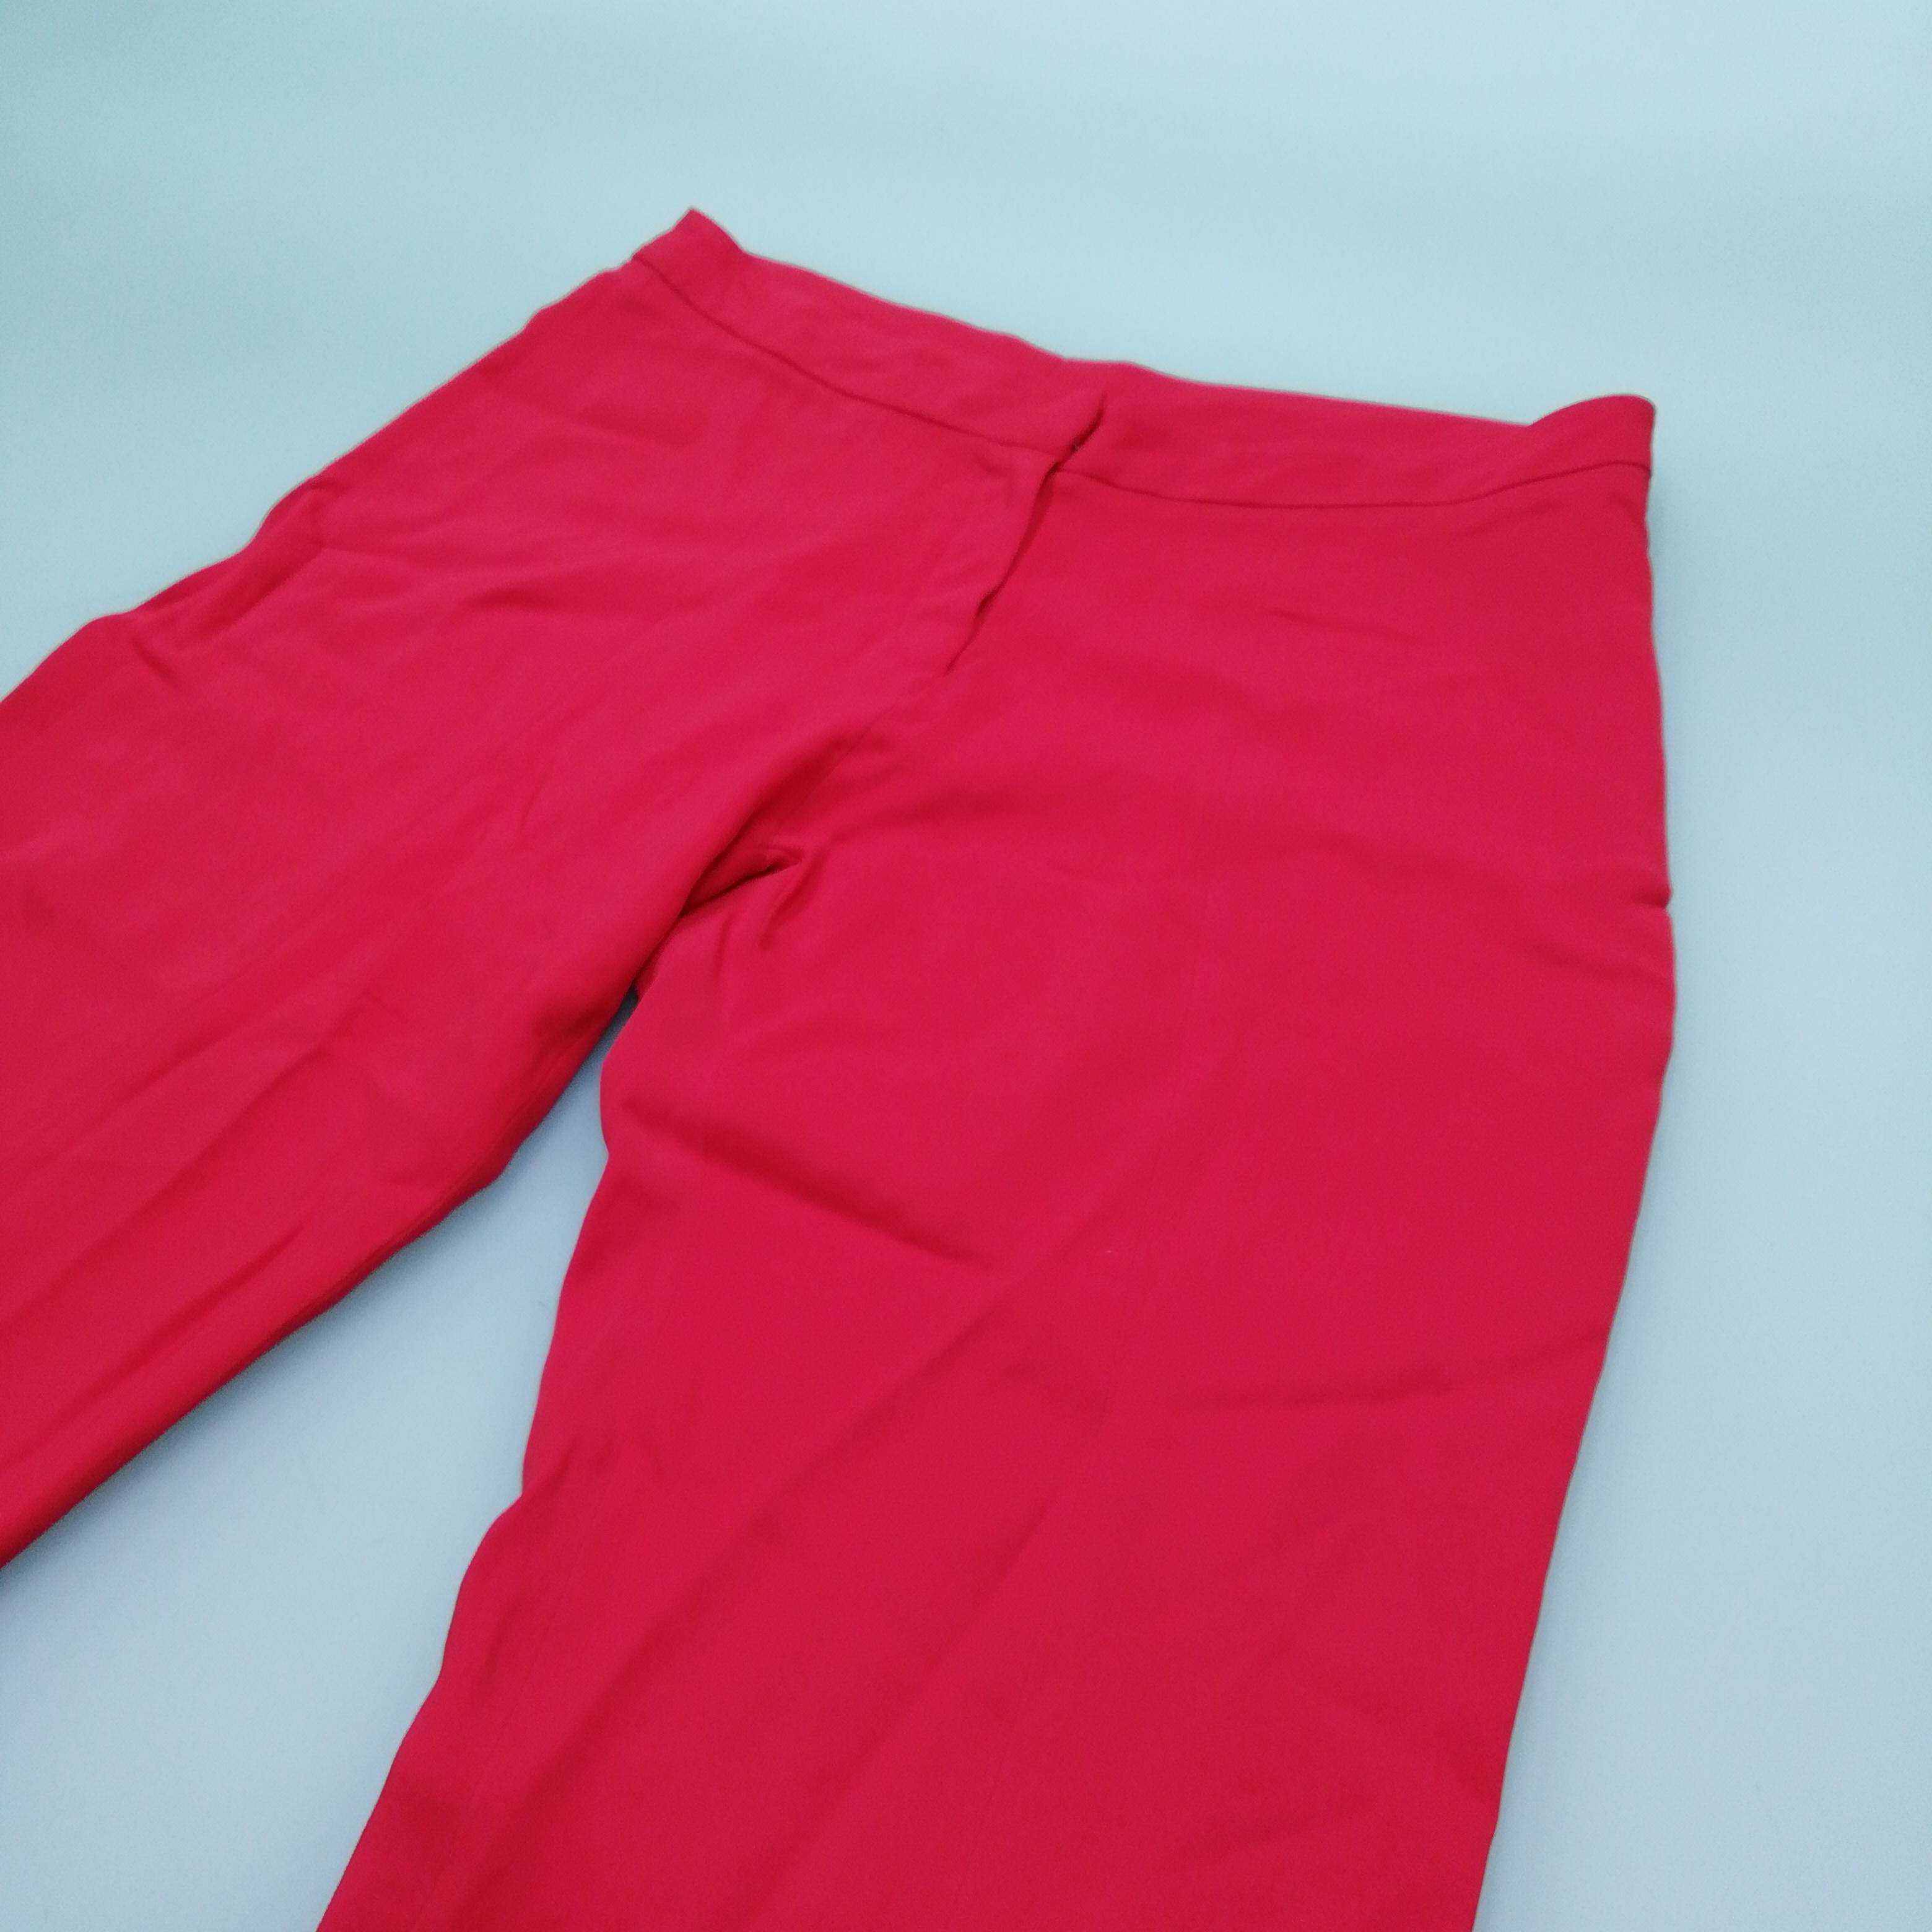 Federica Tosi Women's Trousers Size EU 42 UK 14